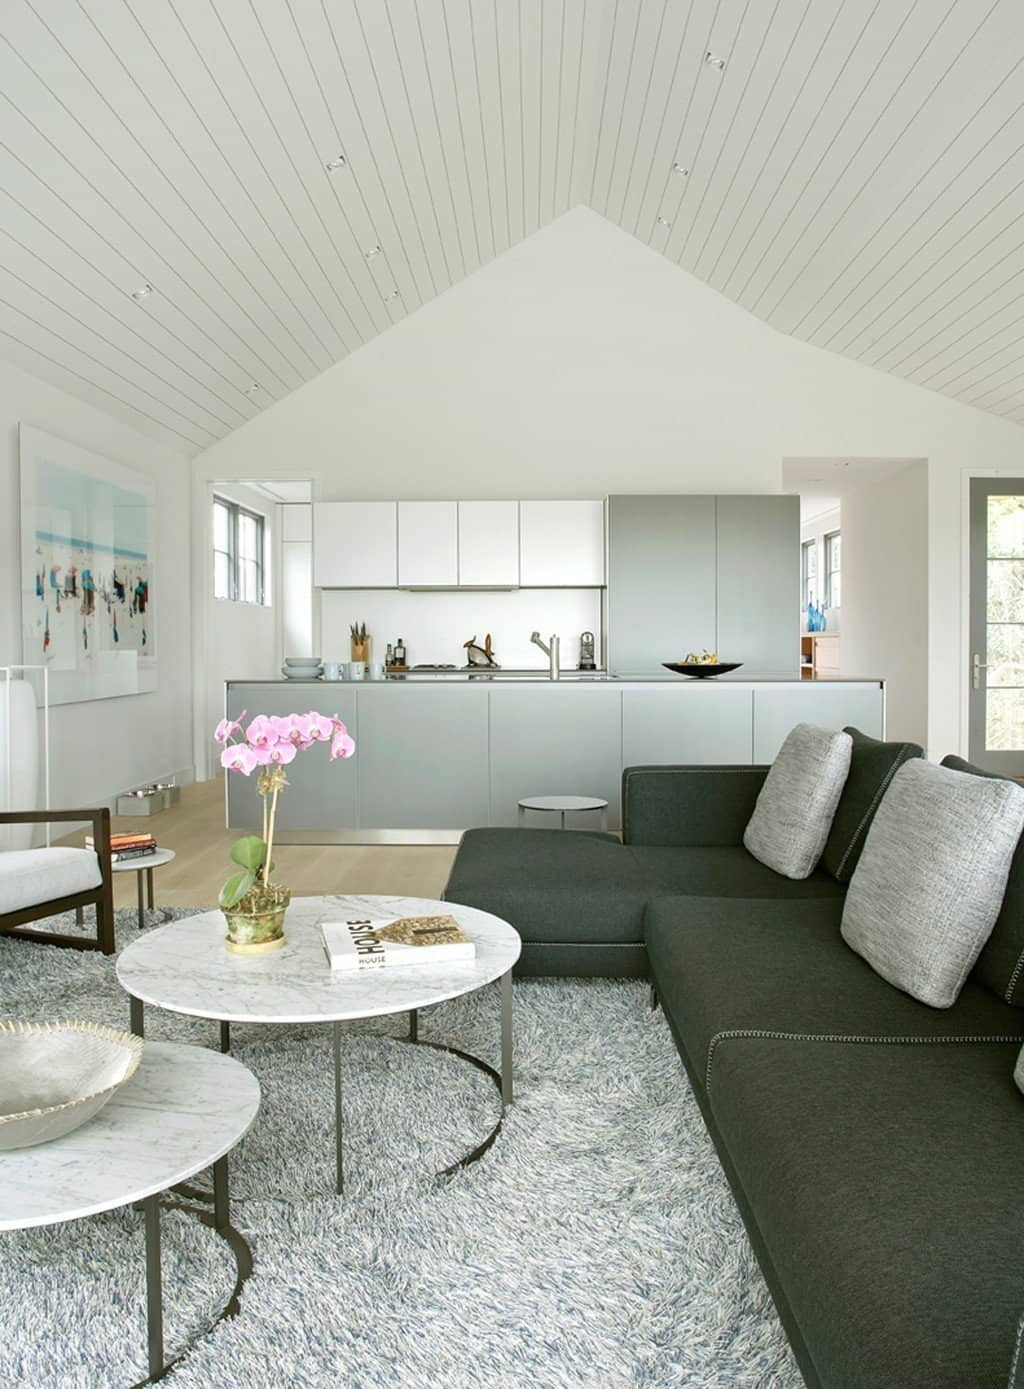 Sagaponack-Cottage-Blaze Makoid Architecture-03-1 Kindesign